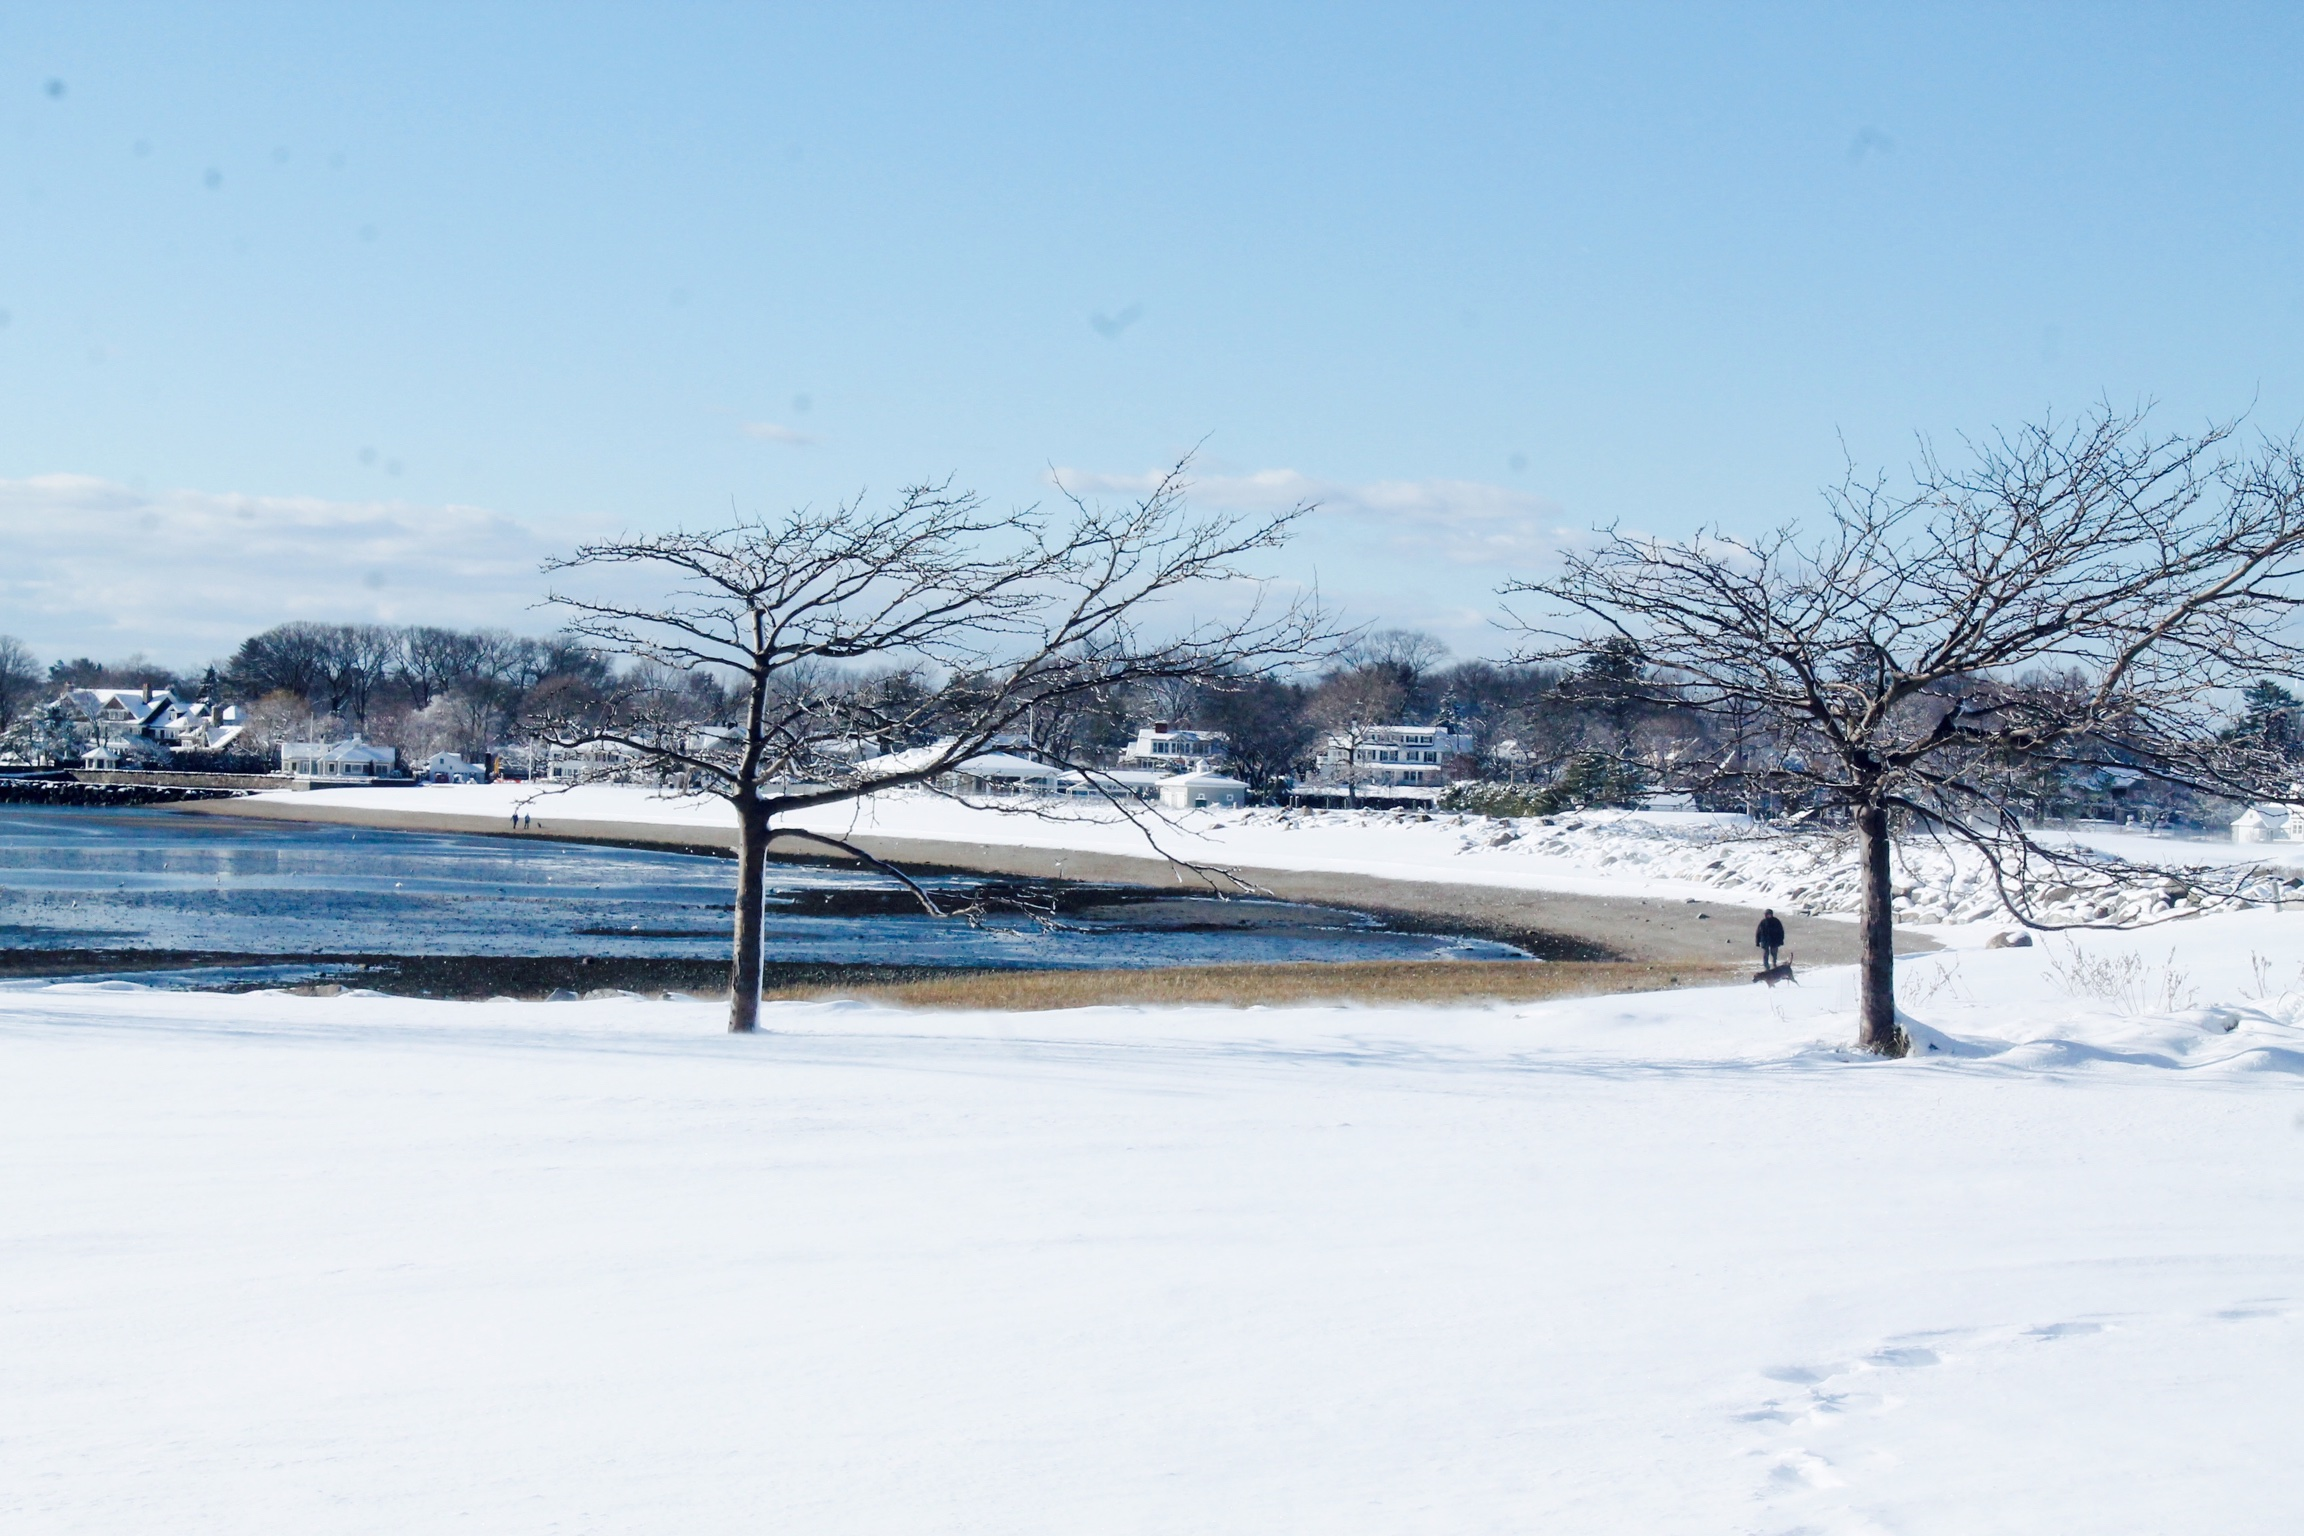 The Beach - Serenity after the snowfall. Image property of The Entertaining House